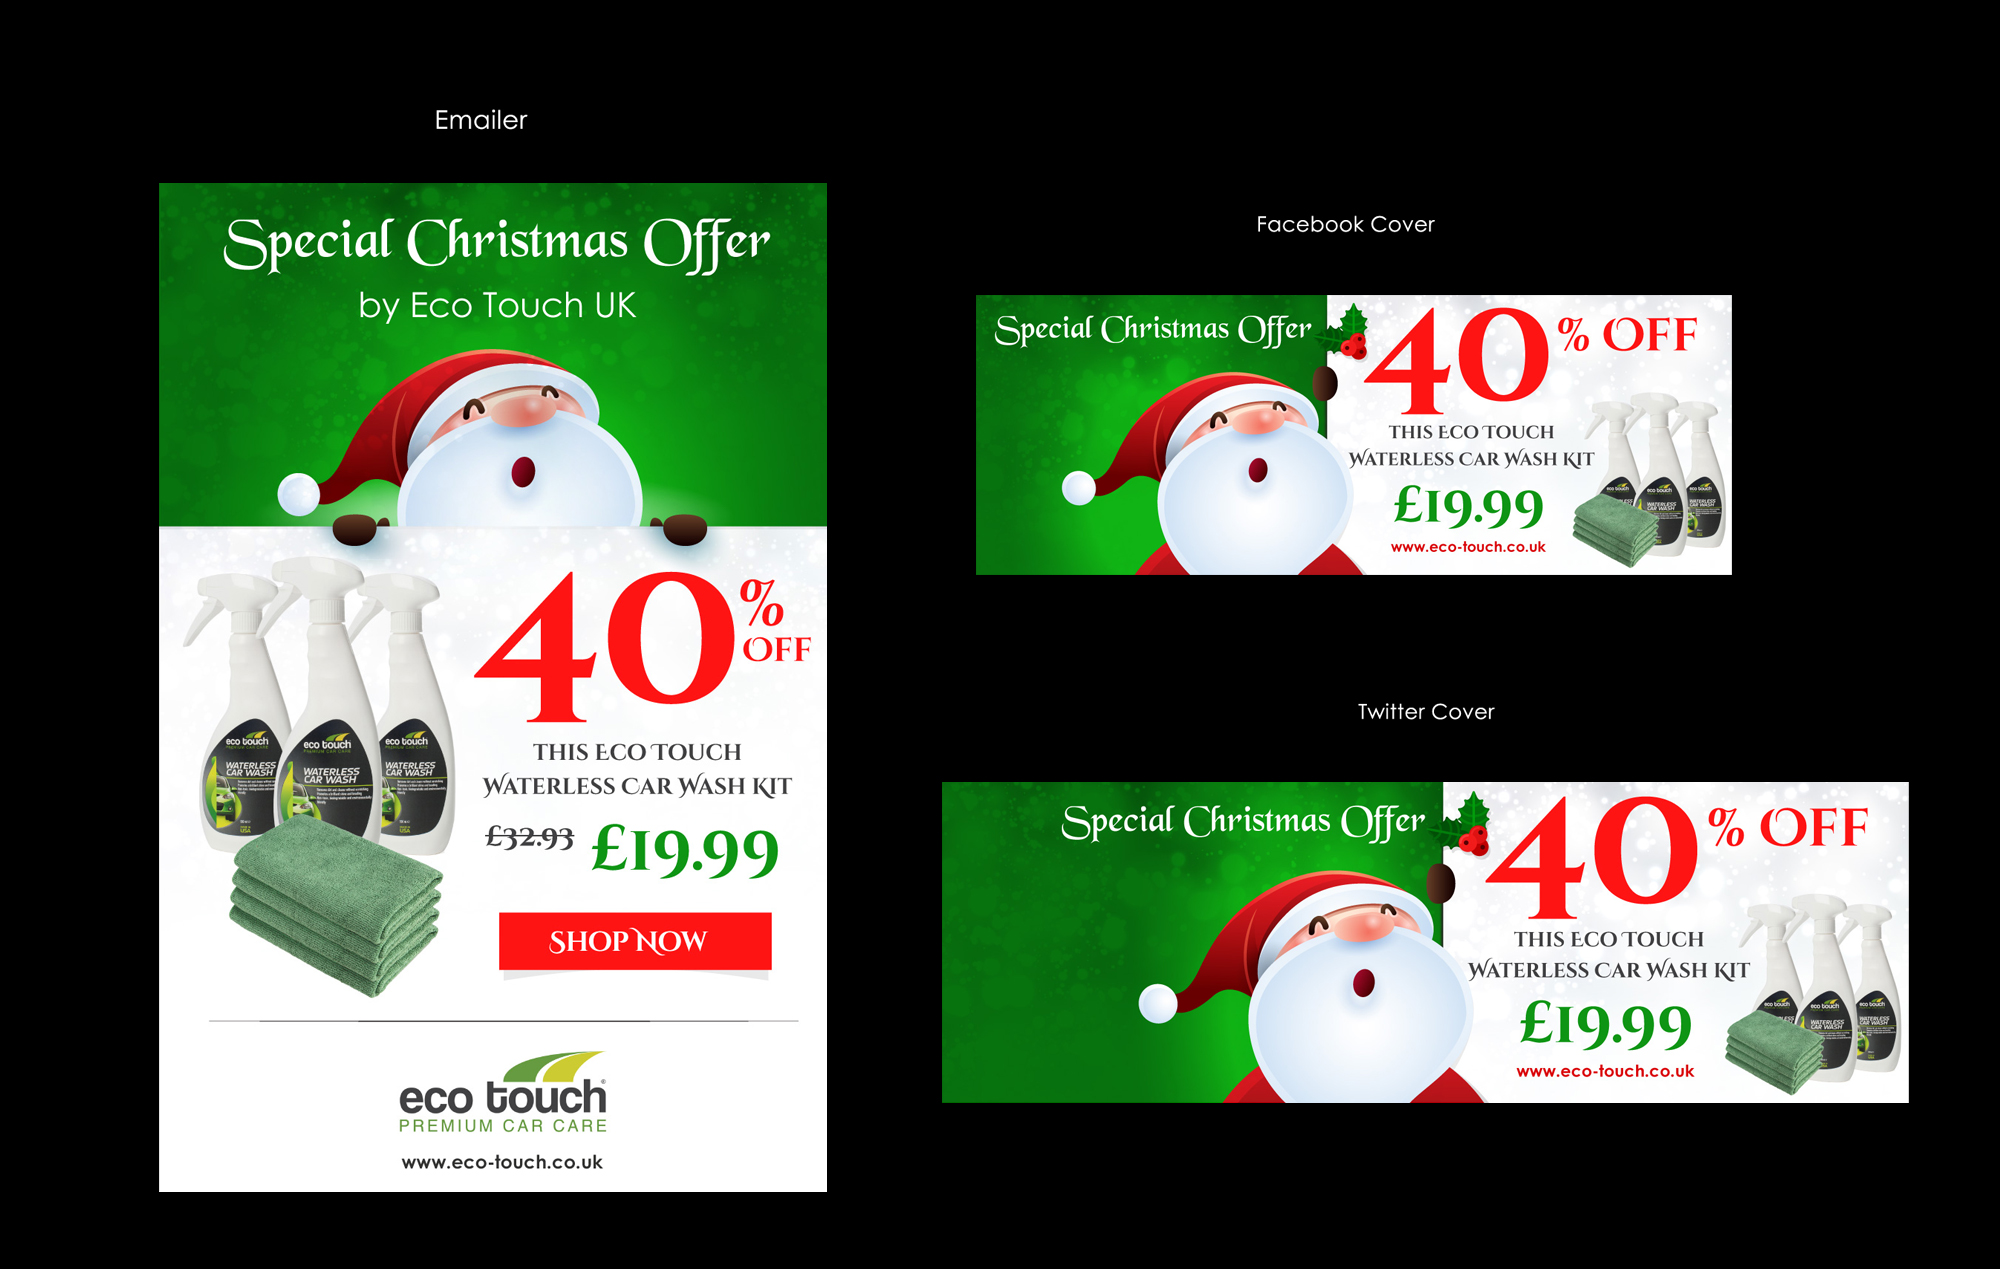 Marketing material for Christmas mailshot/social media Campaign for eco-friendly car care company - Home and Garden